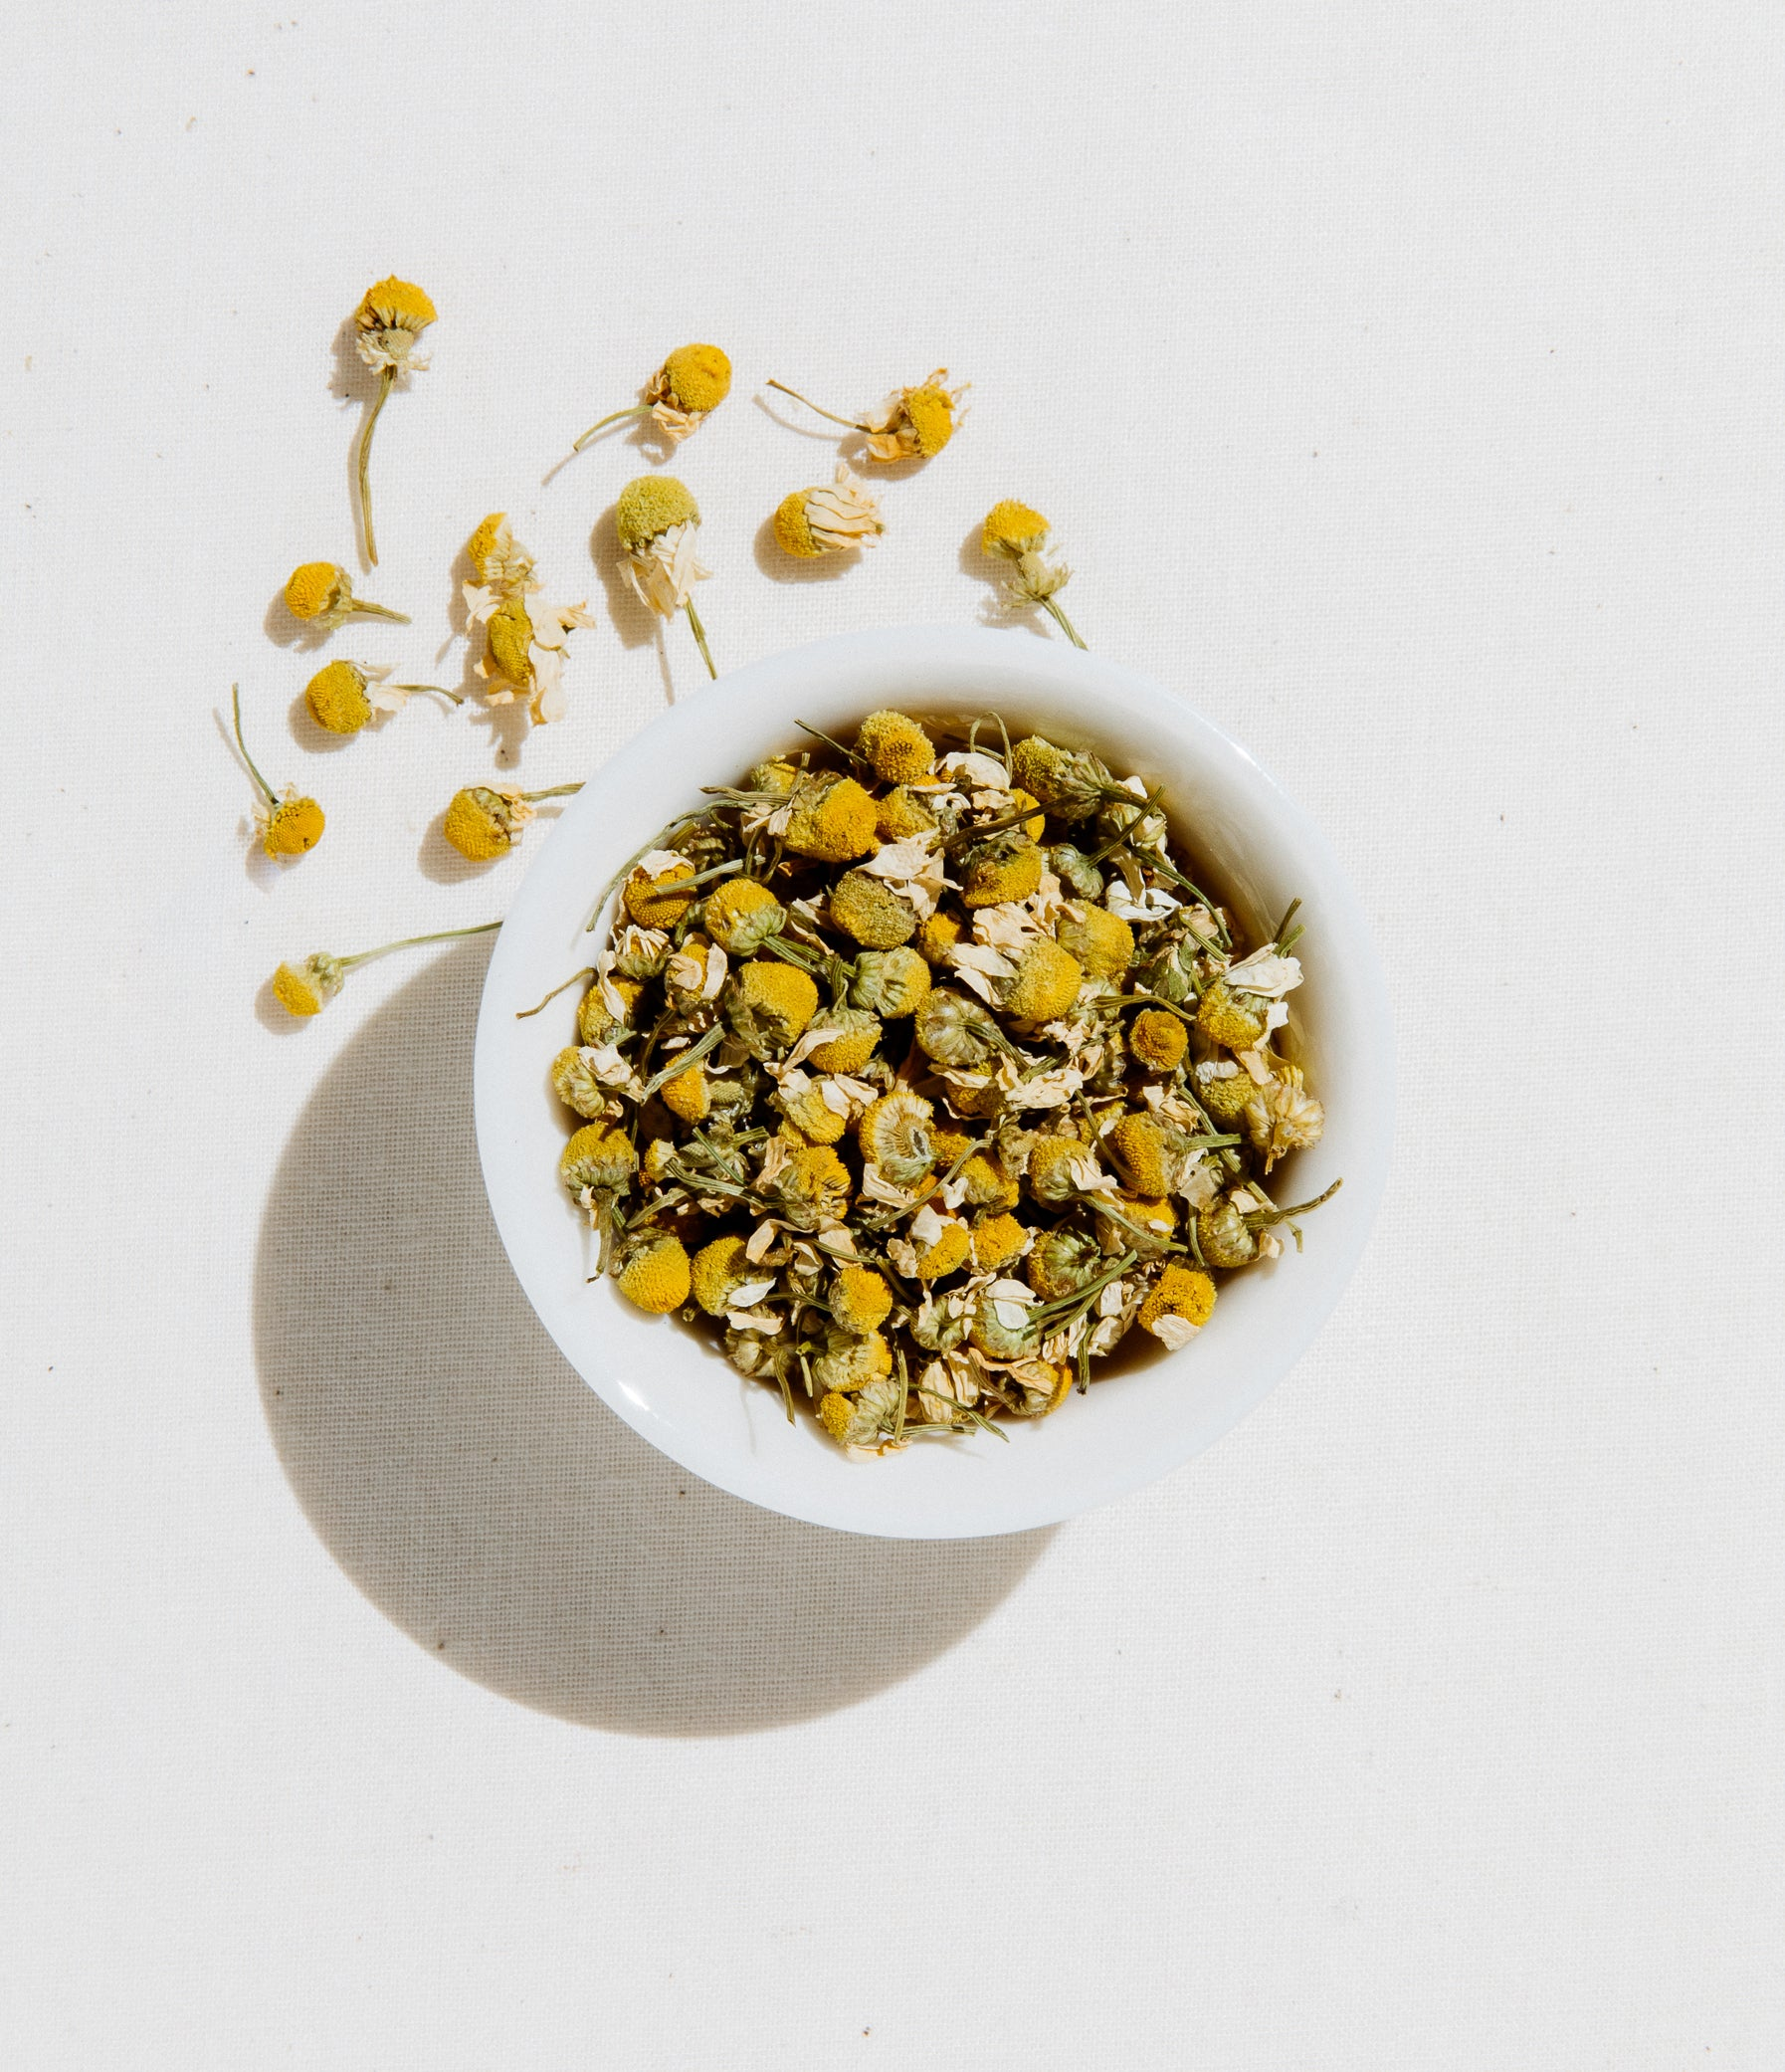 Egyptian Chamomile Tea Loose Leaf 4 oz Zip Pouch by Art of Tea